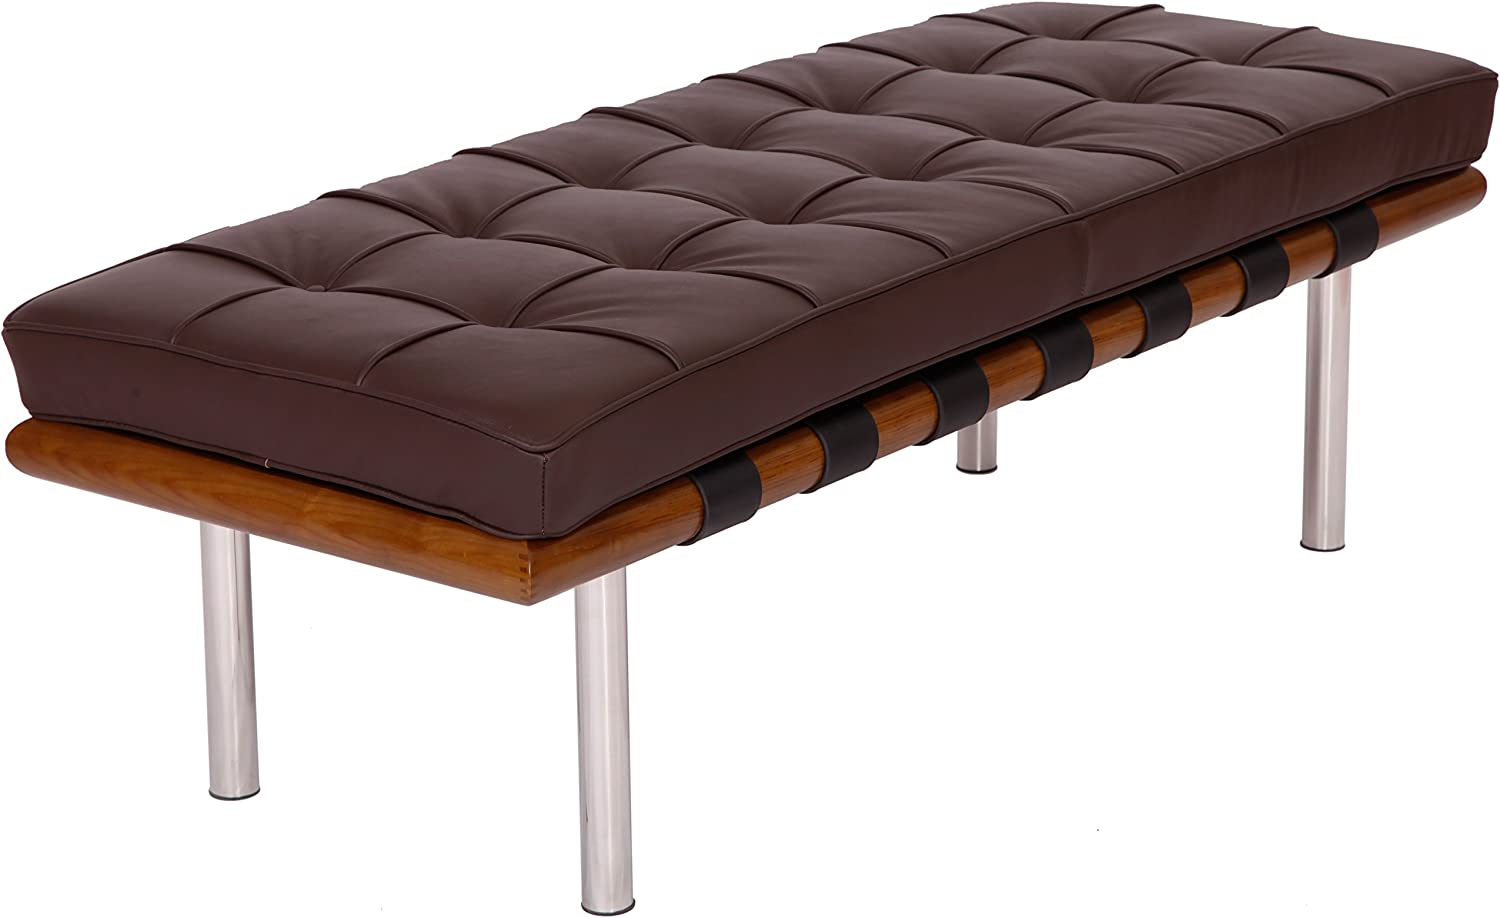 MLF Pavilion Bench 4 Colors 2 Sizes . High Resilient Foam. Italian Leather. Breathability, Steady, Durable, Artistic. Mattress Detachable. 52 Inch, Dark Brown Italian Leather Light Walnut